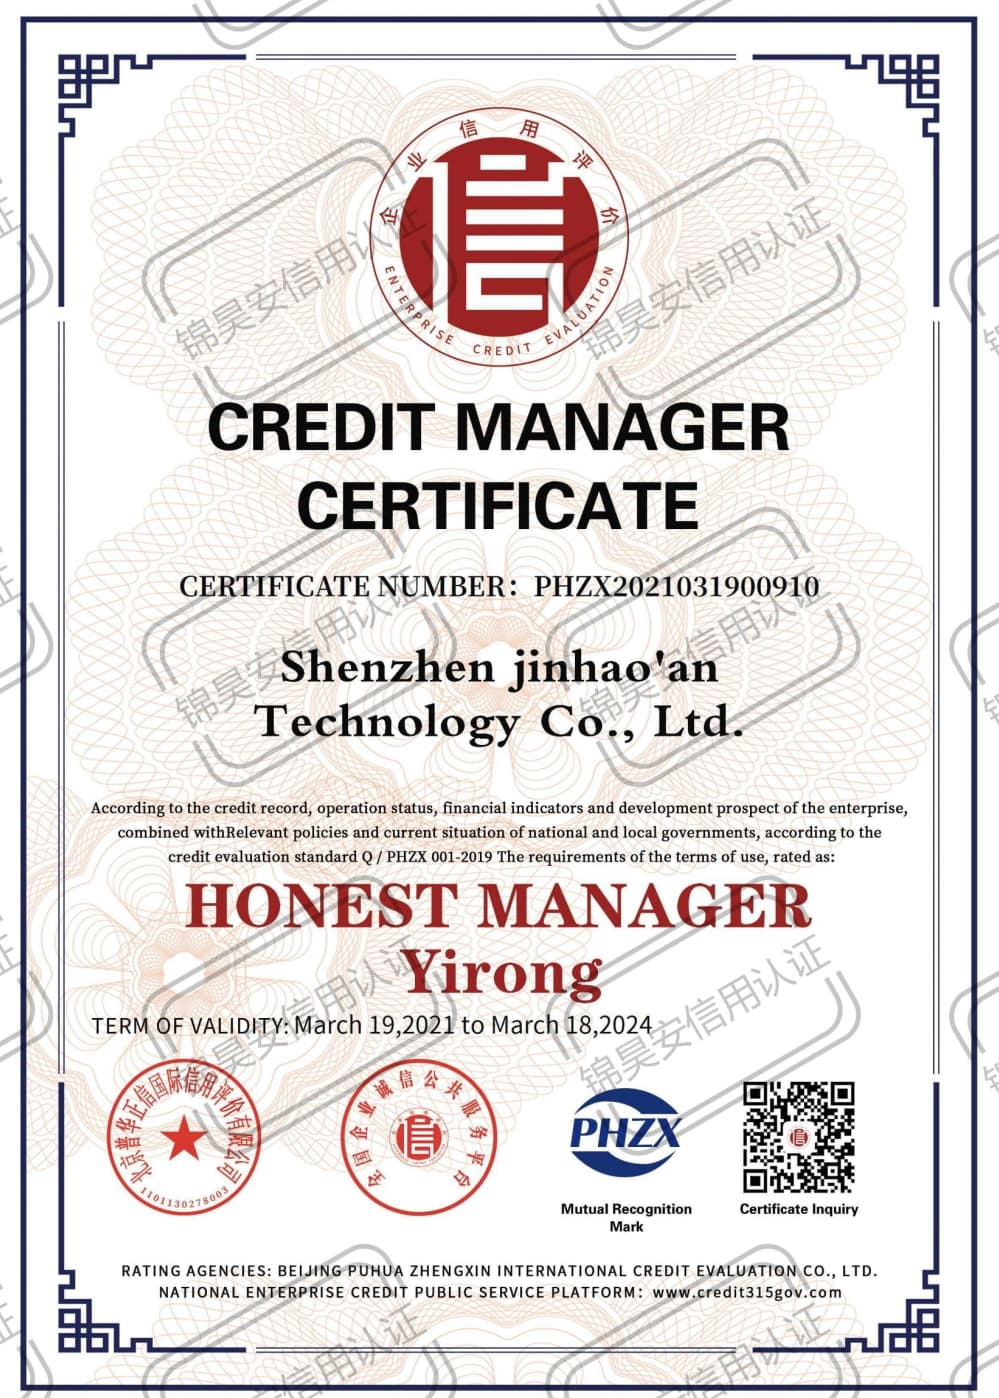 Credit Manager Certificate